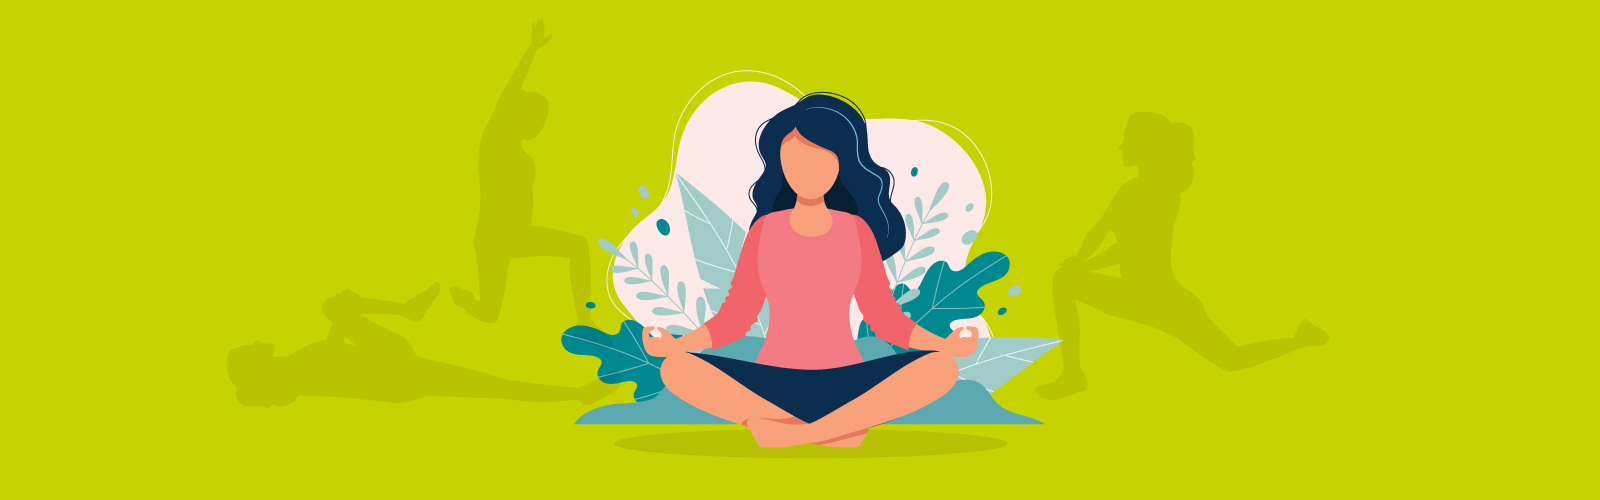 "SCSU uses Atleto to roll out their ""Stress Less with Rec"" mindfulness series"